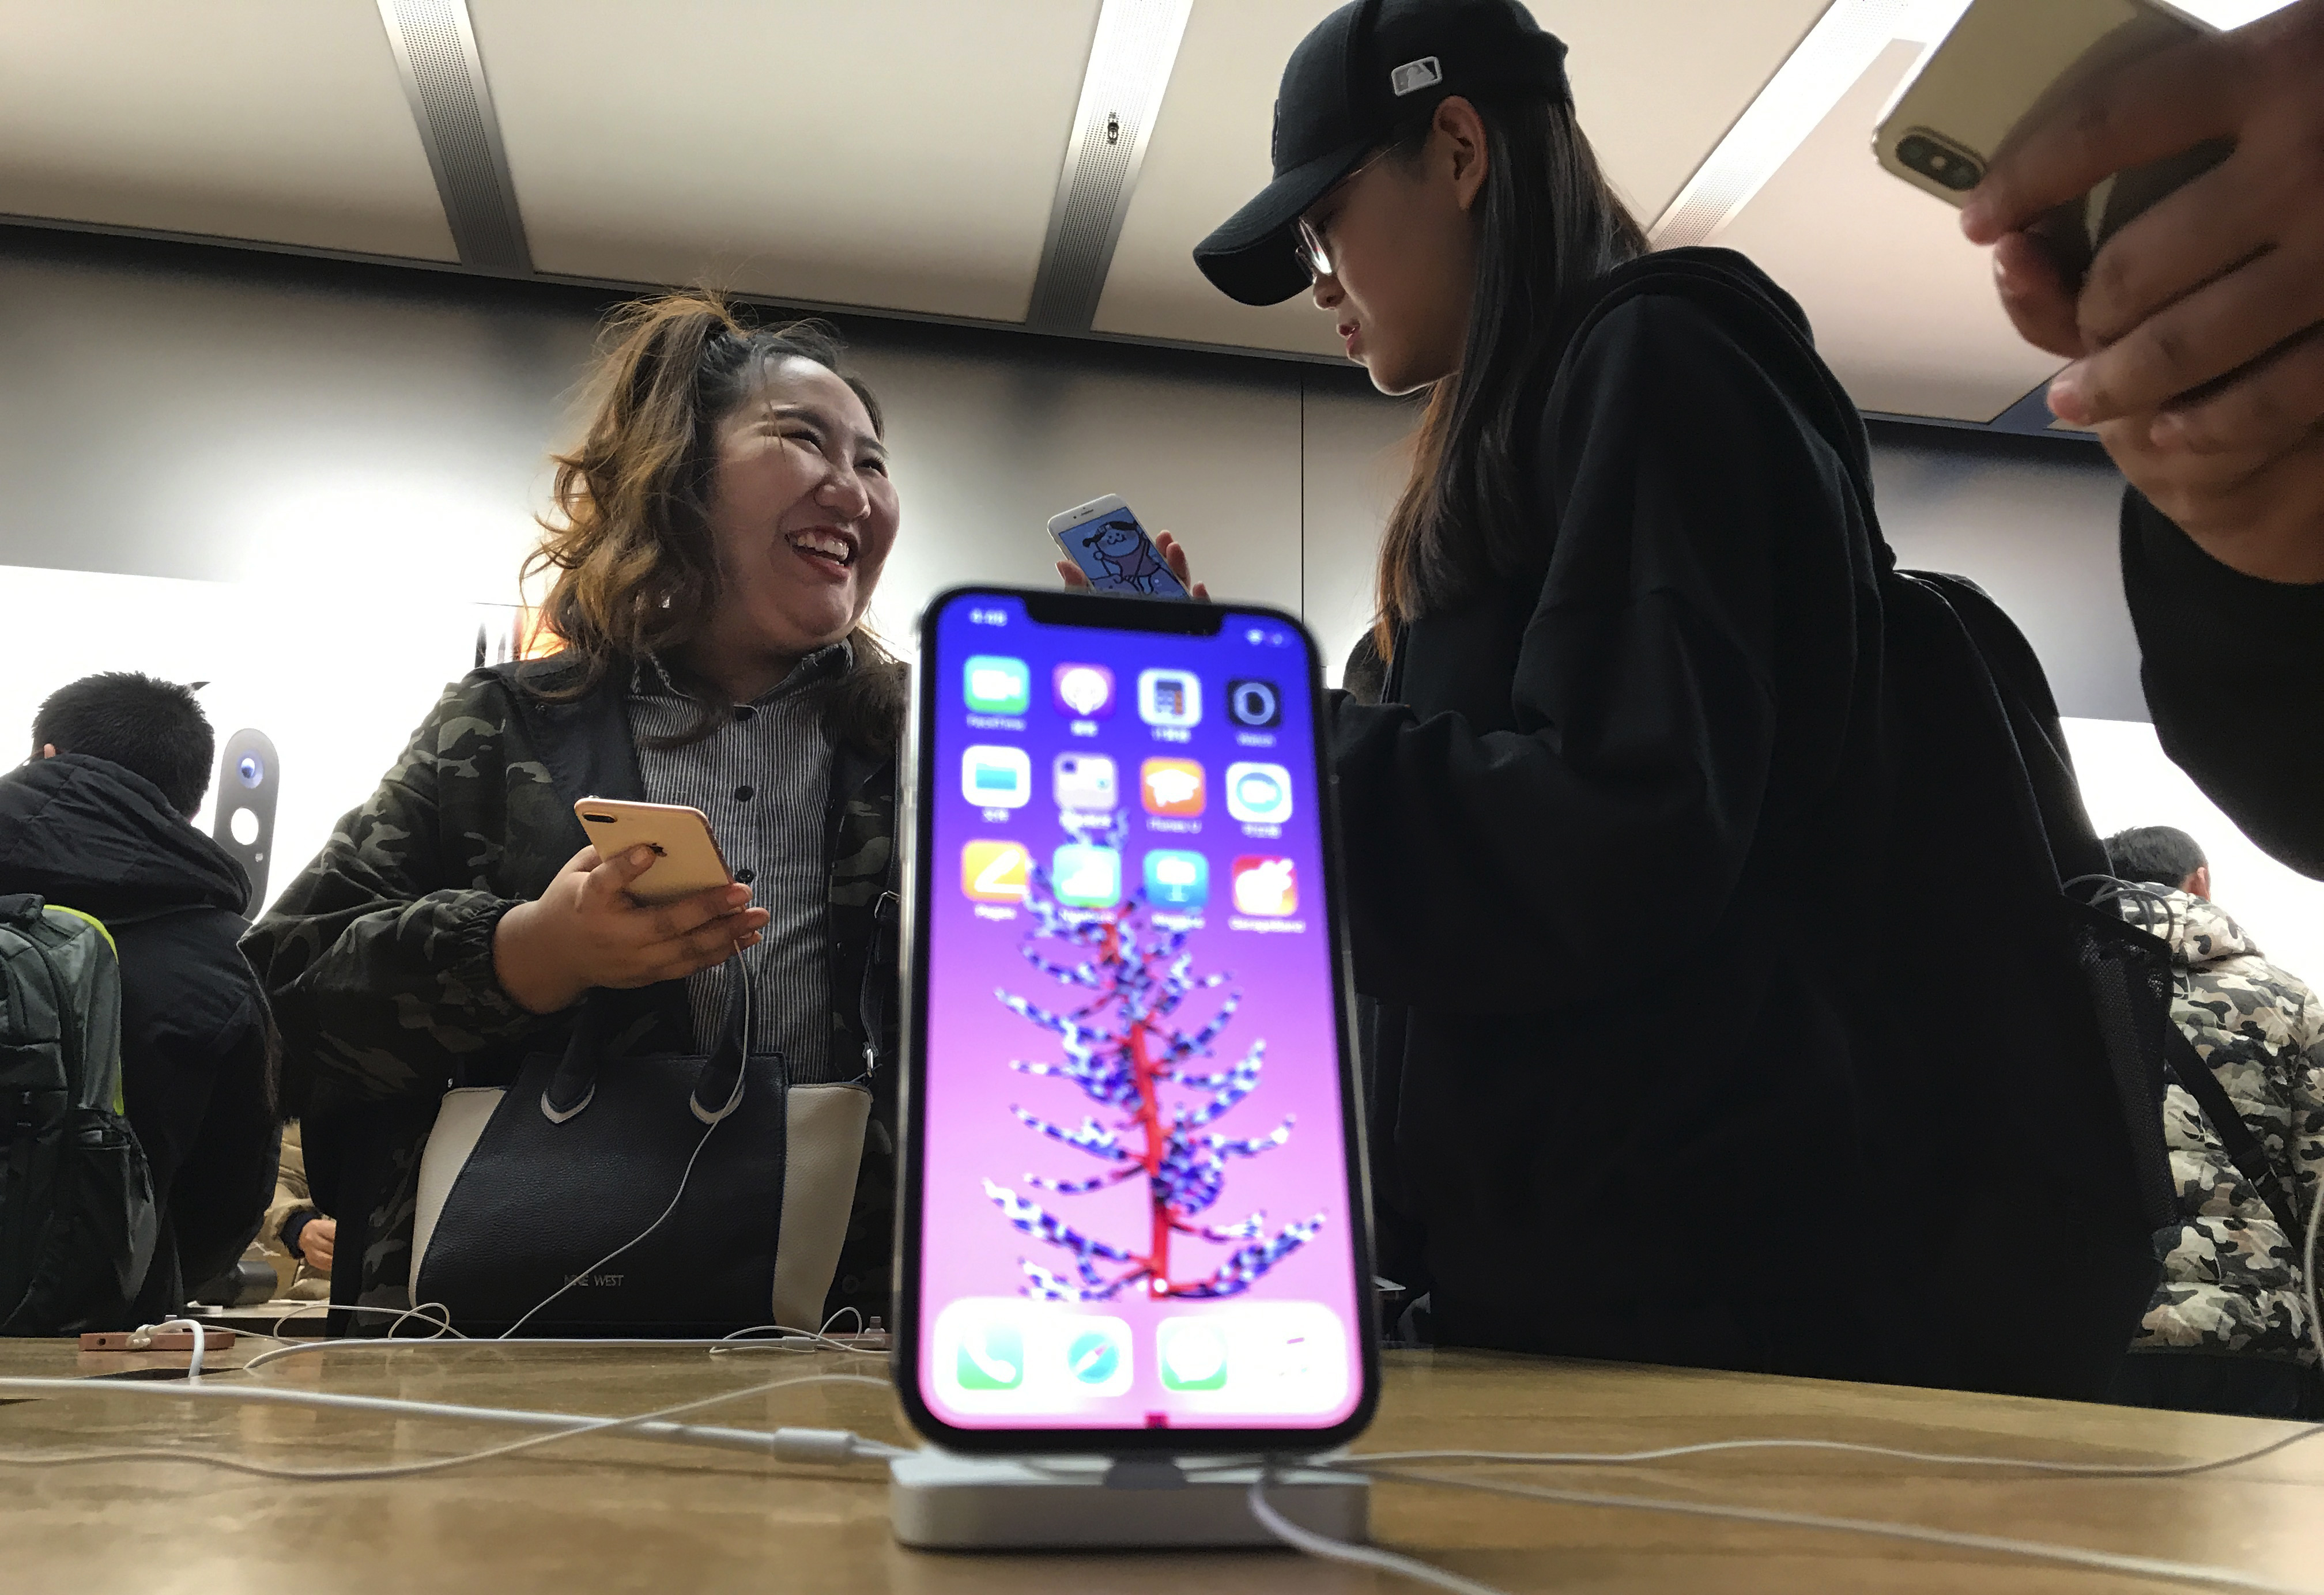 Shoppers check out the iPhone X at an Apple store in Beijing, China, Monday, Nov. 6, 2017. Apple's iPhone X went on sale as the company scrambles to meet demand for a marquee device that sports a lush screen, facial-recognition skills and a $1,000 price tag. (AP Photo/Ng Han Guan)